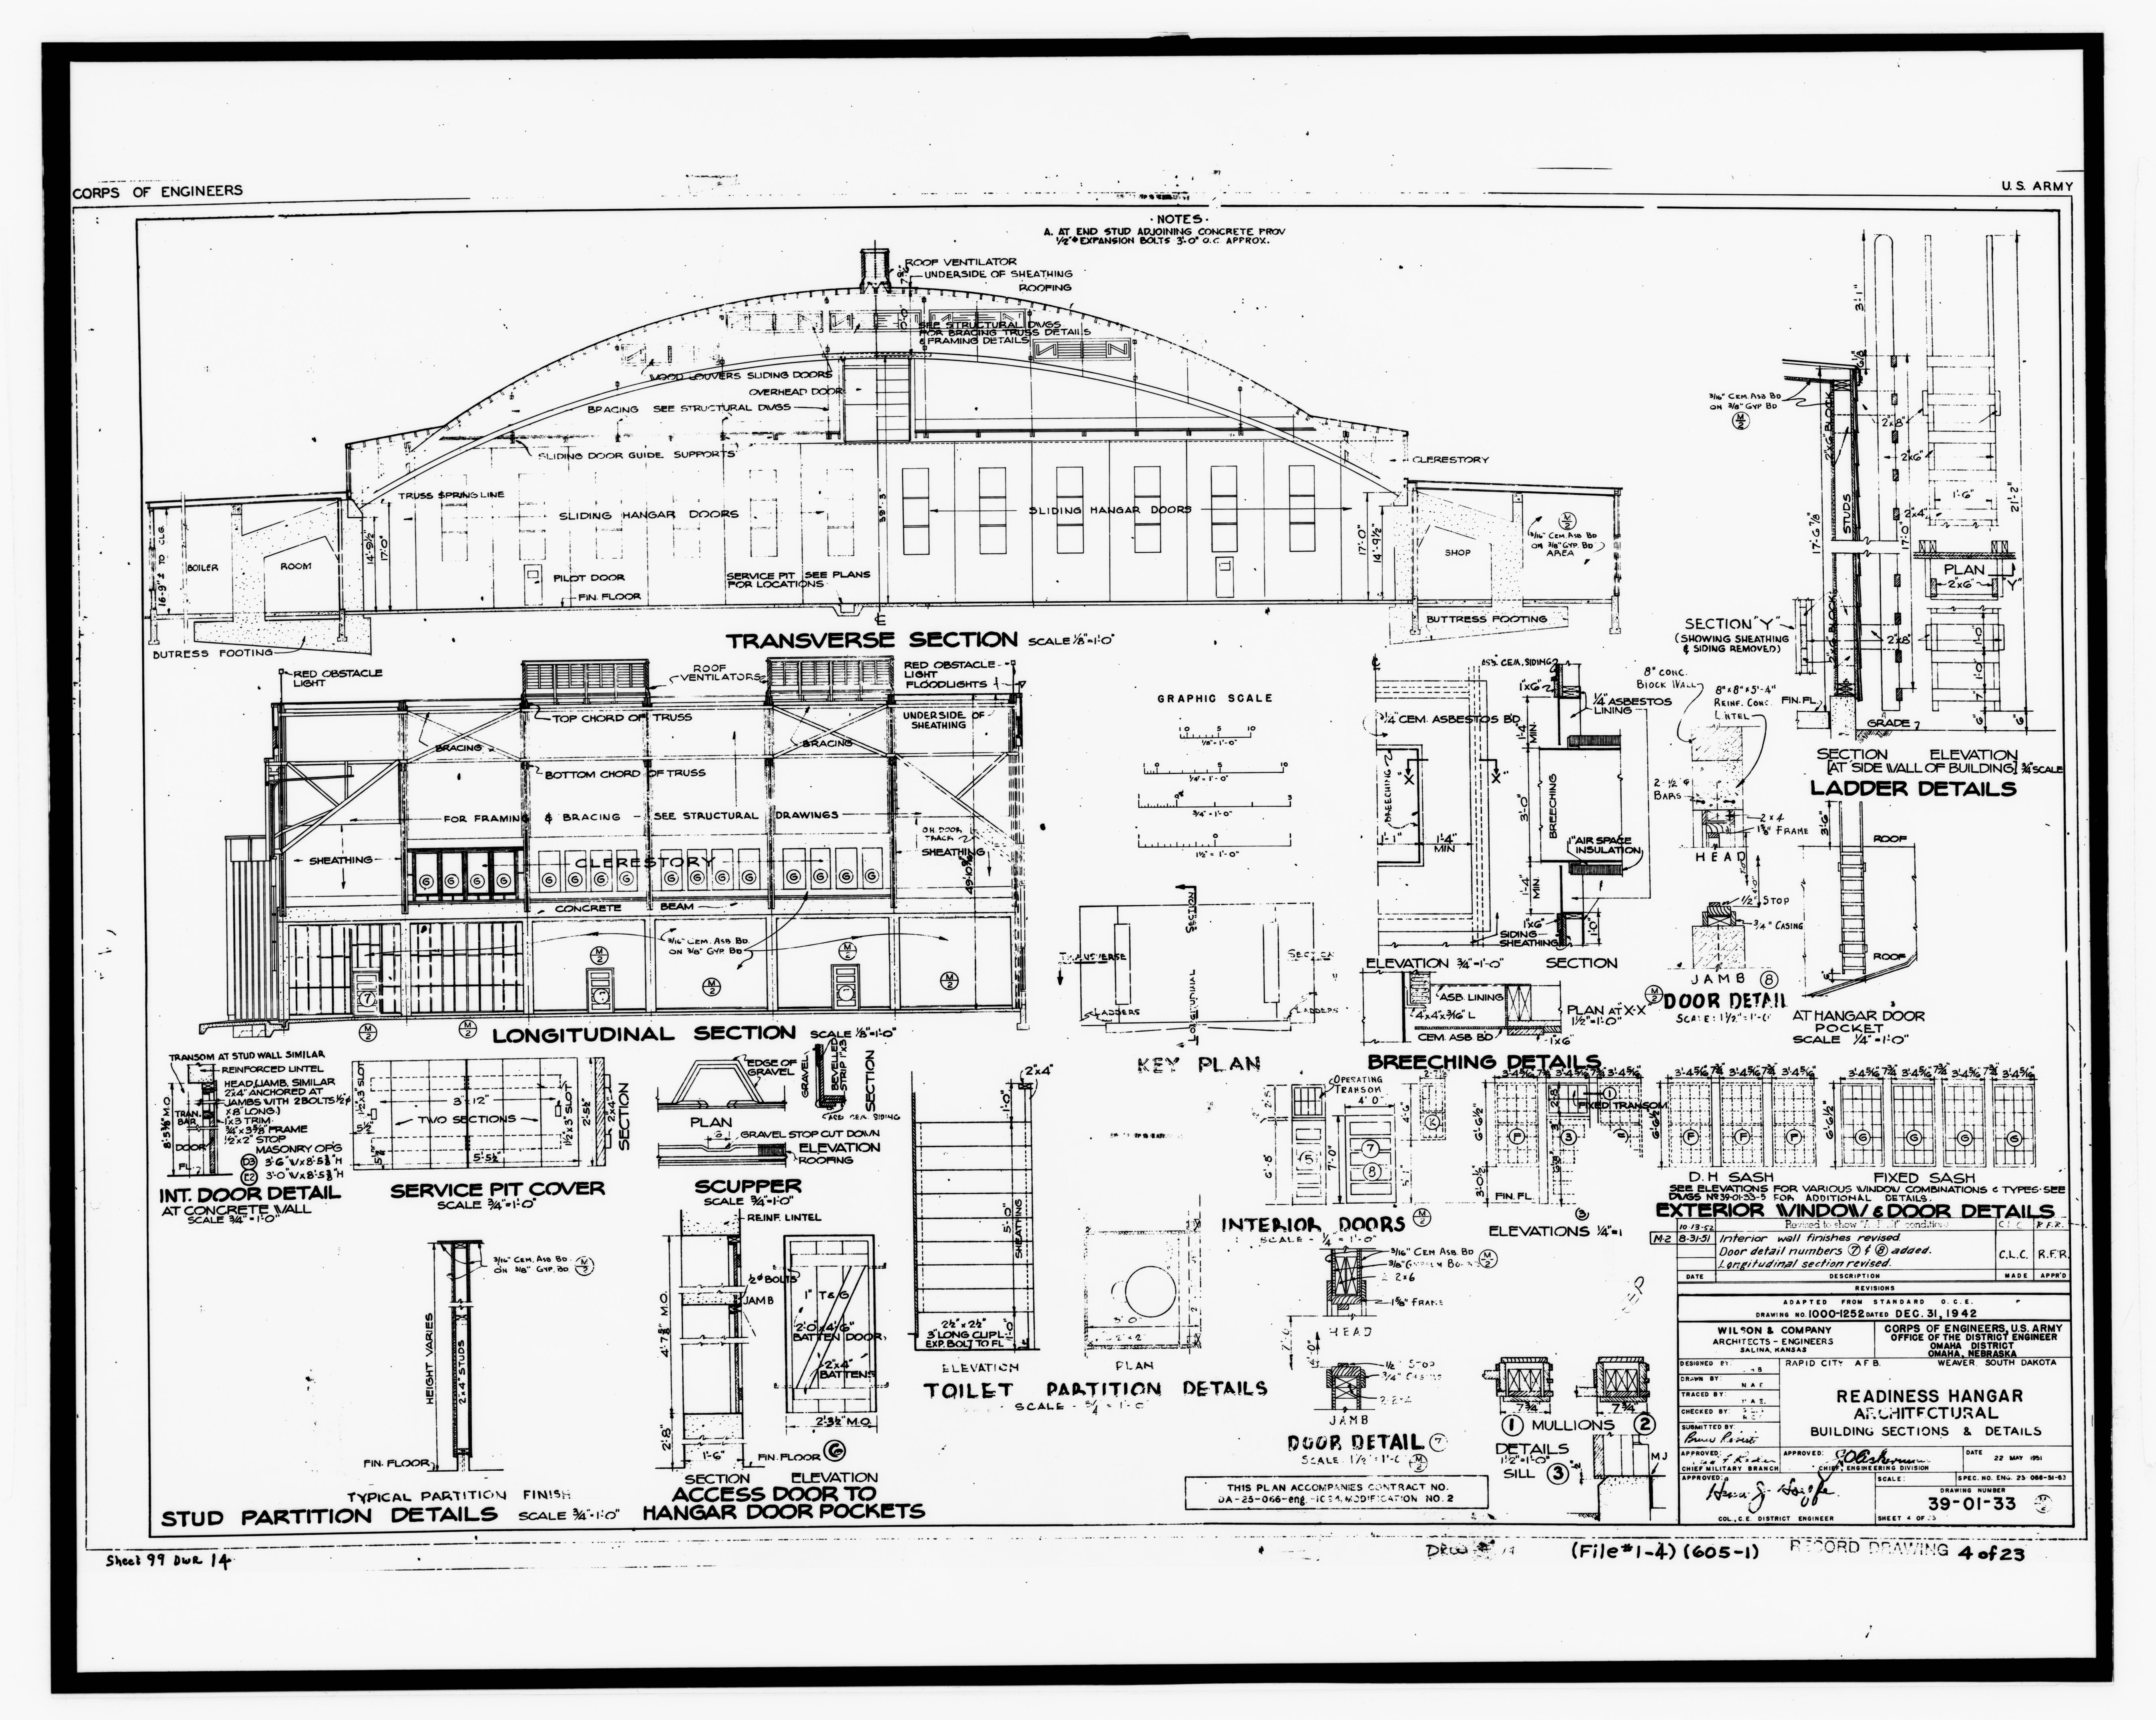 File:Photographic copy of original construction drawing